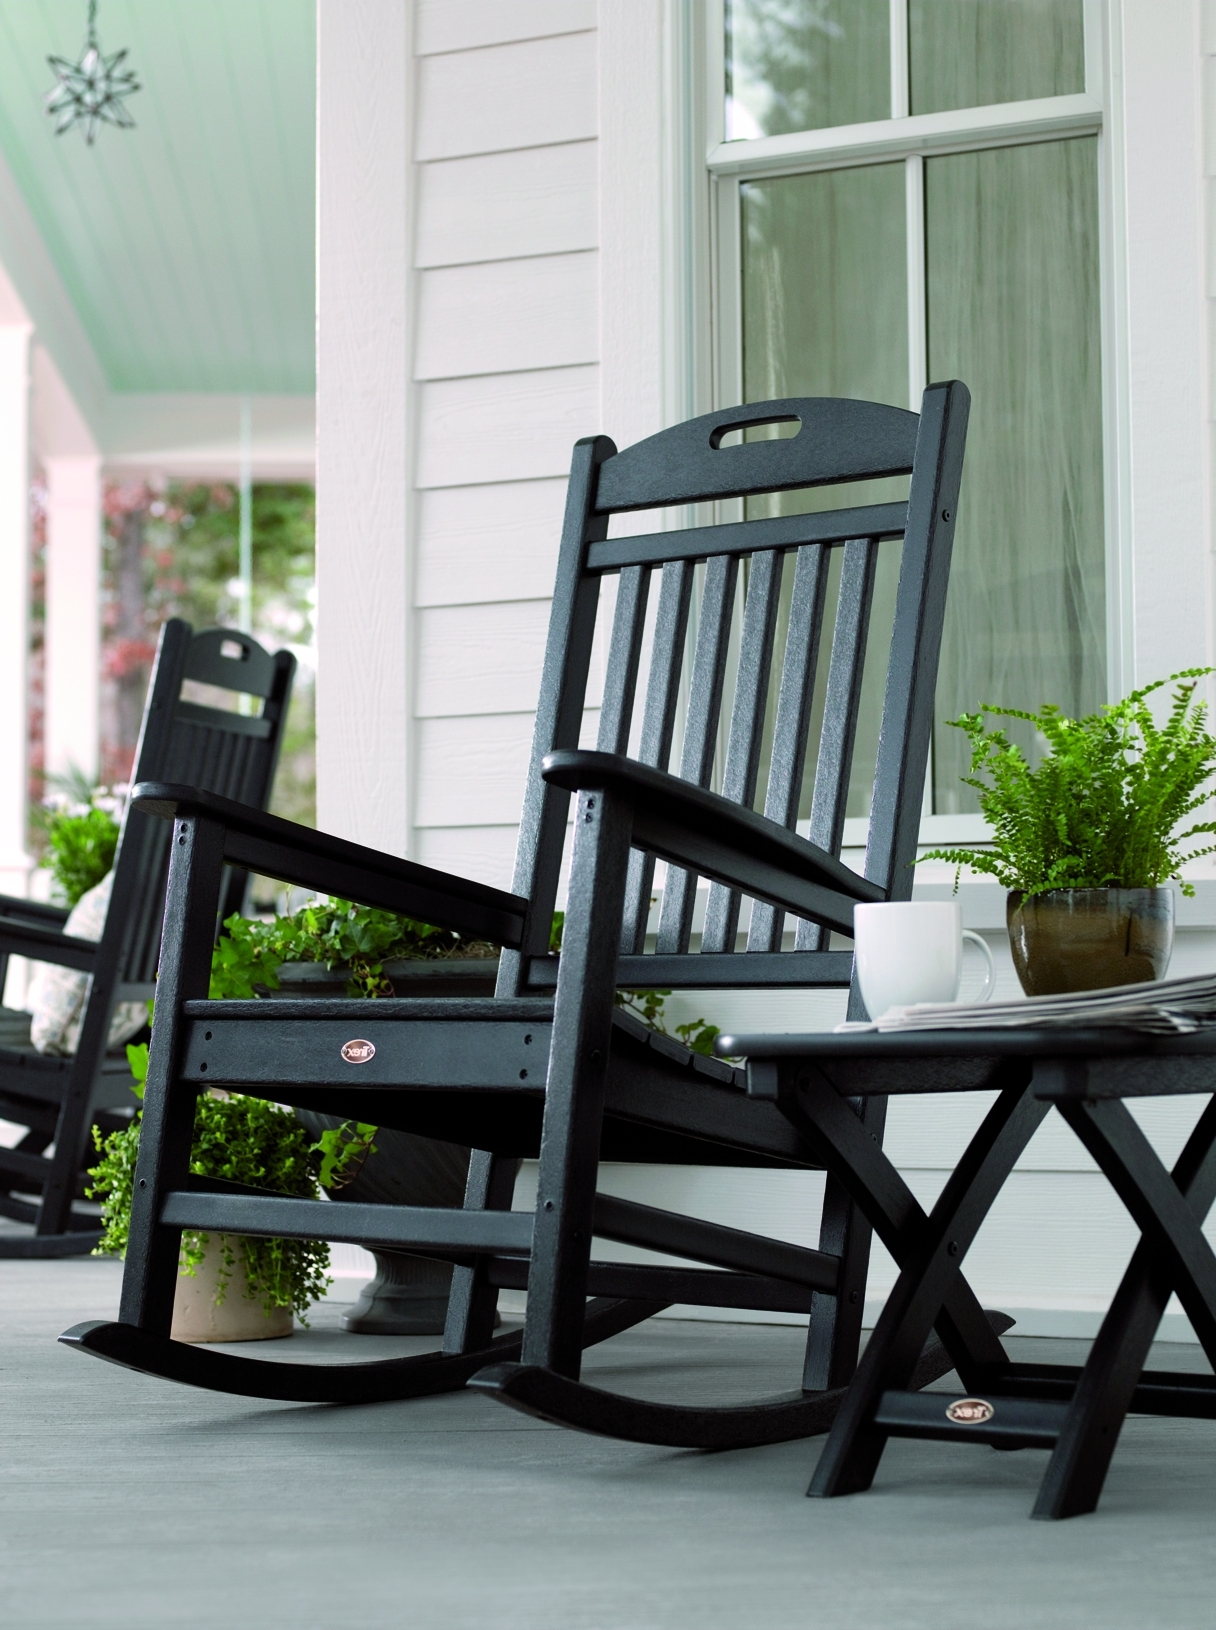 Widely Used Elegant Porch Rocking Chairs Ideas F20X About Remodel Most Regarding Rocking Chairs For Porch (View 20 of 20)